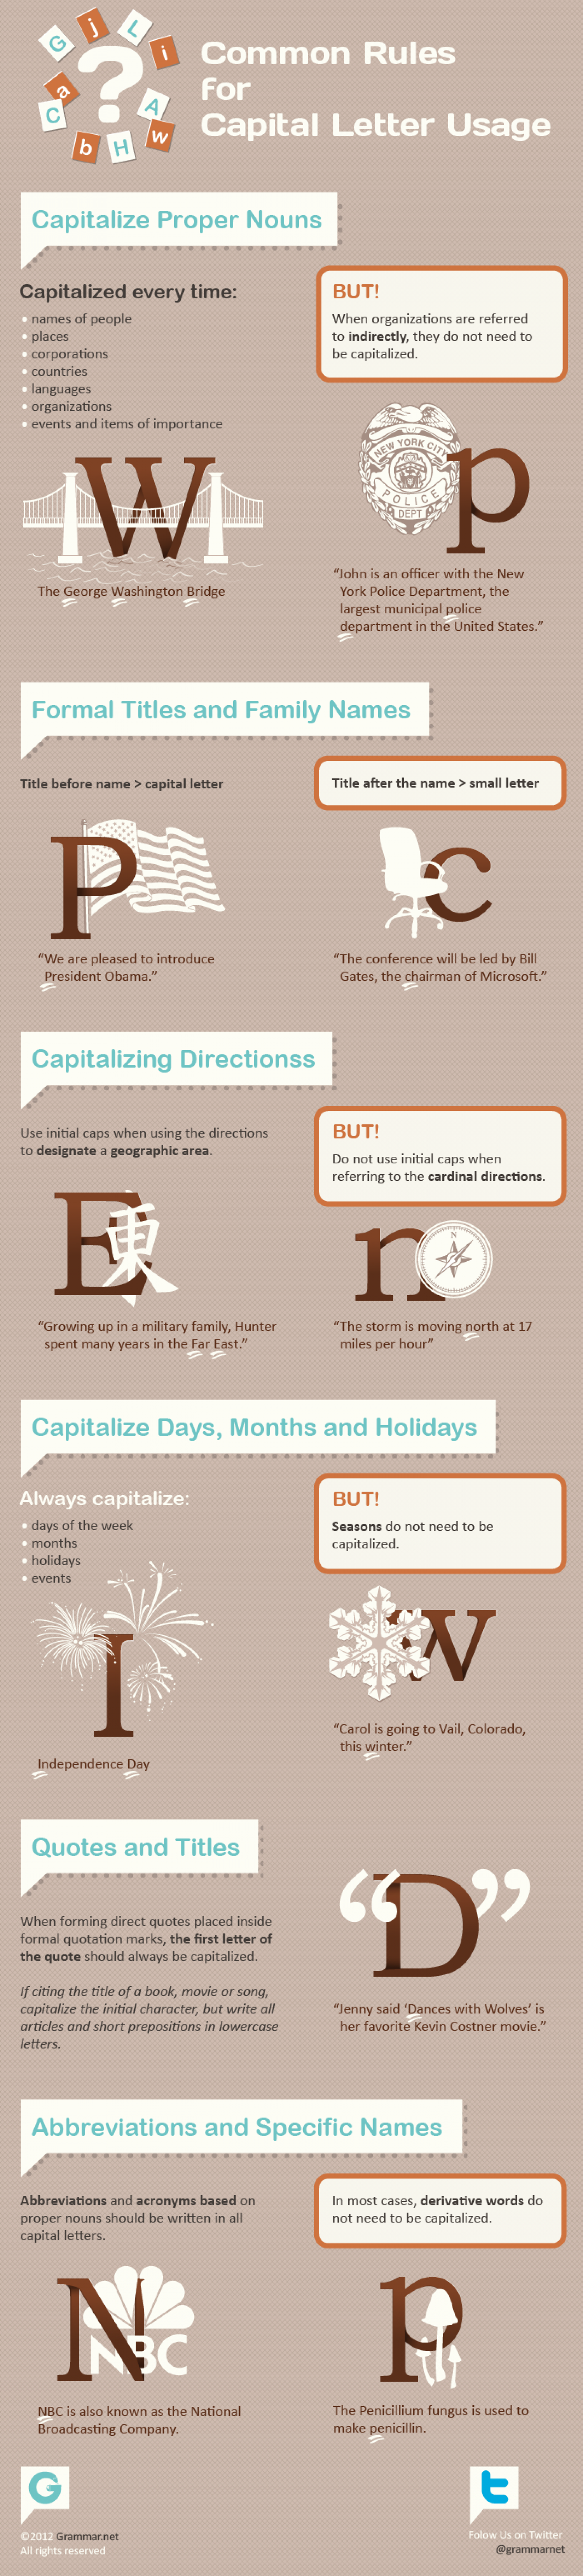 Common Rules for Capital Letter Usage Infographic